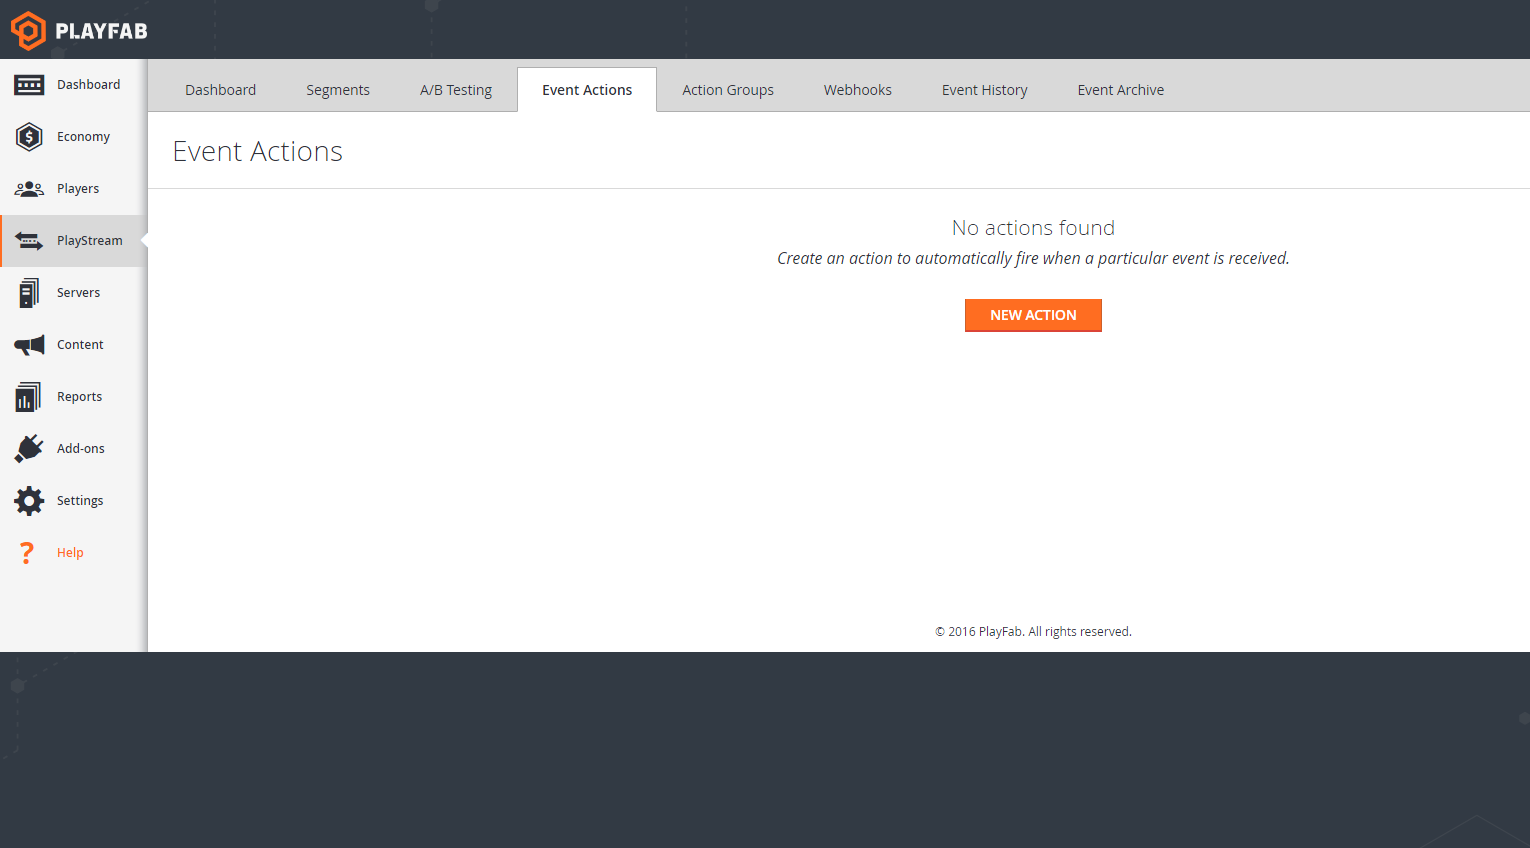 cloudscript_eventaction.png#asset:746